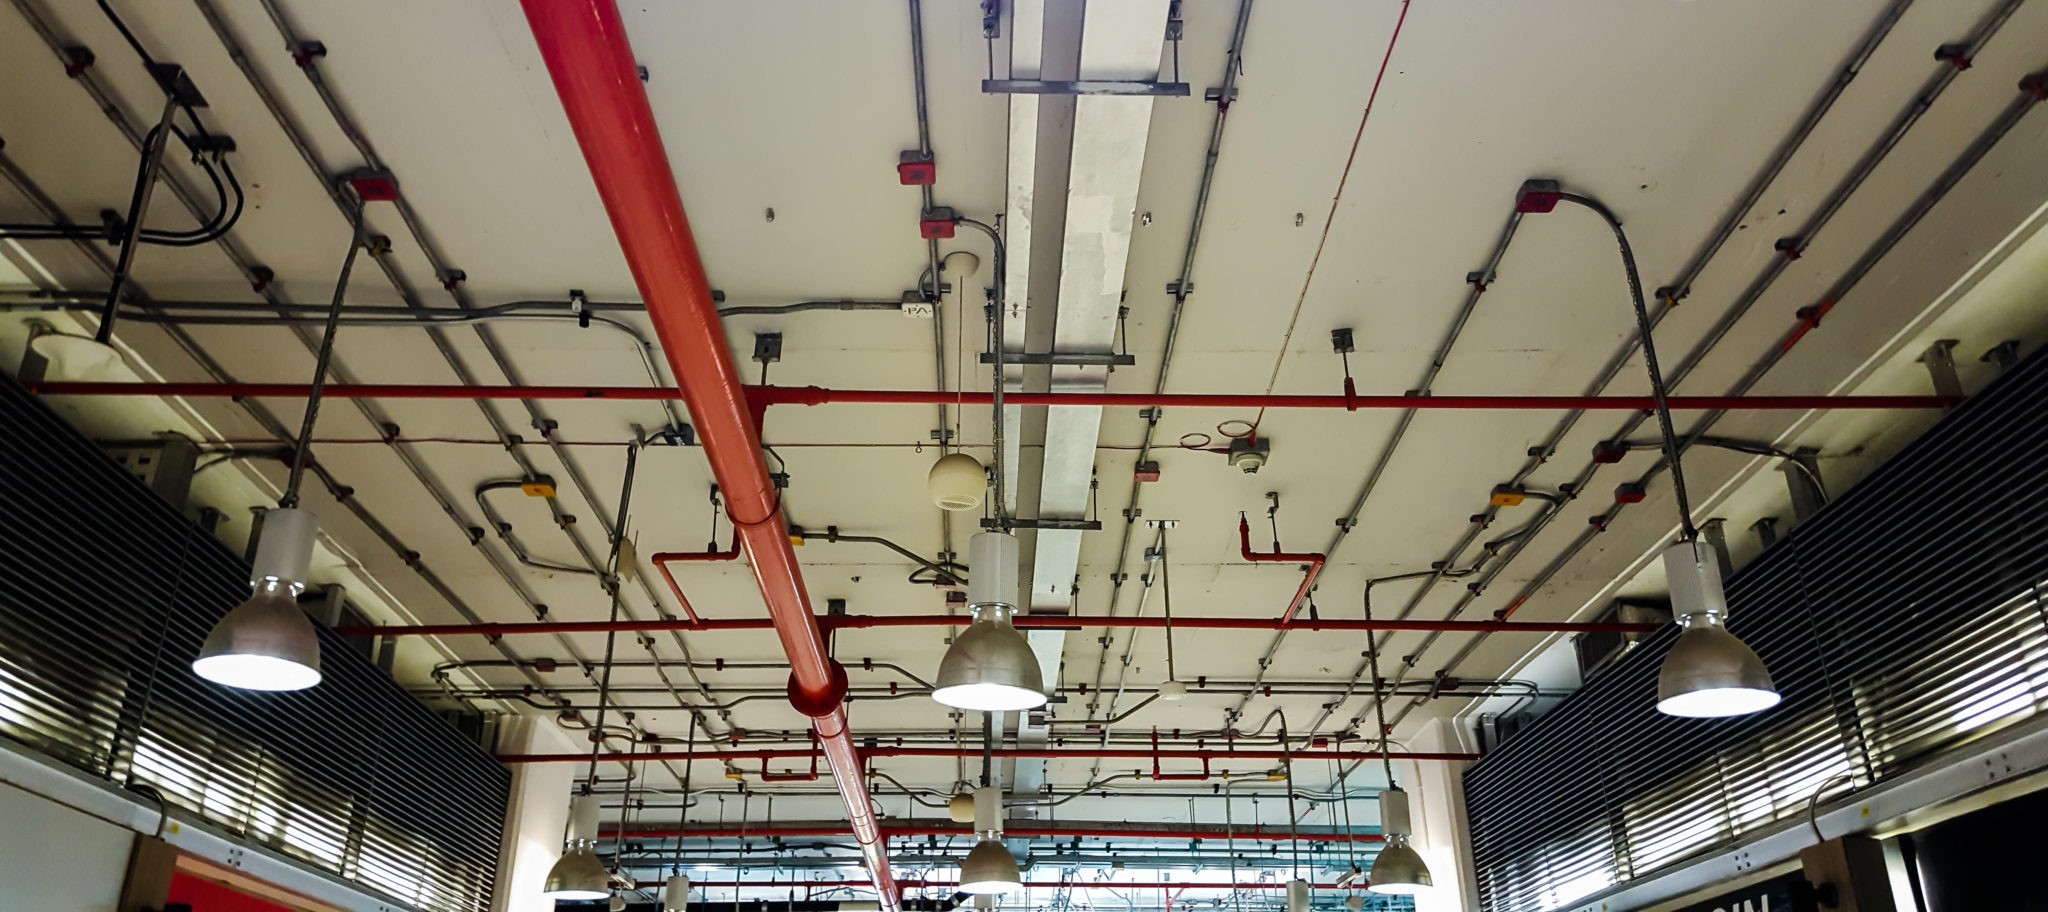 Fire Sprinkler Monitoring System and Nitrogen Generator